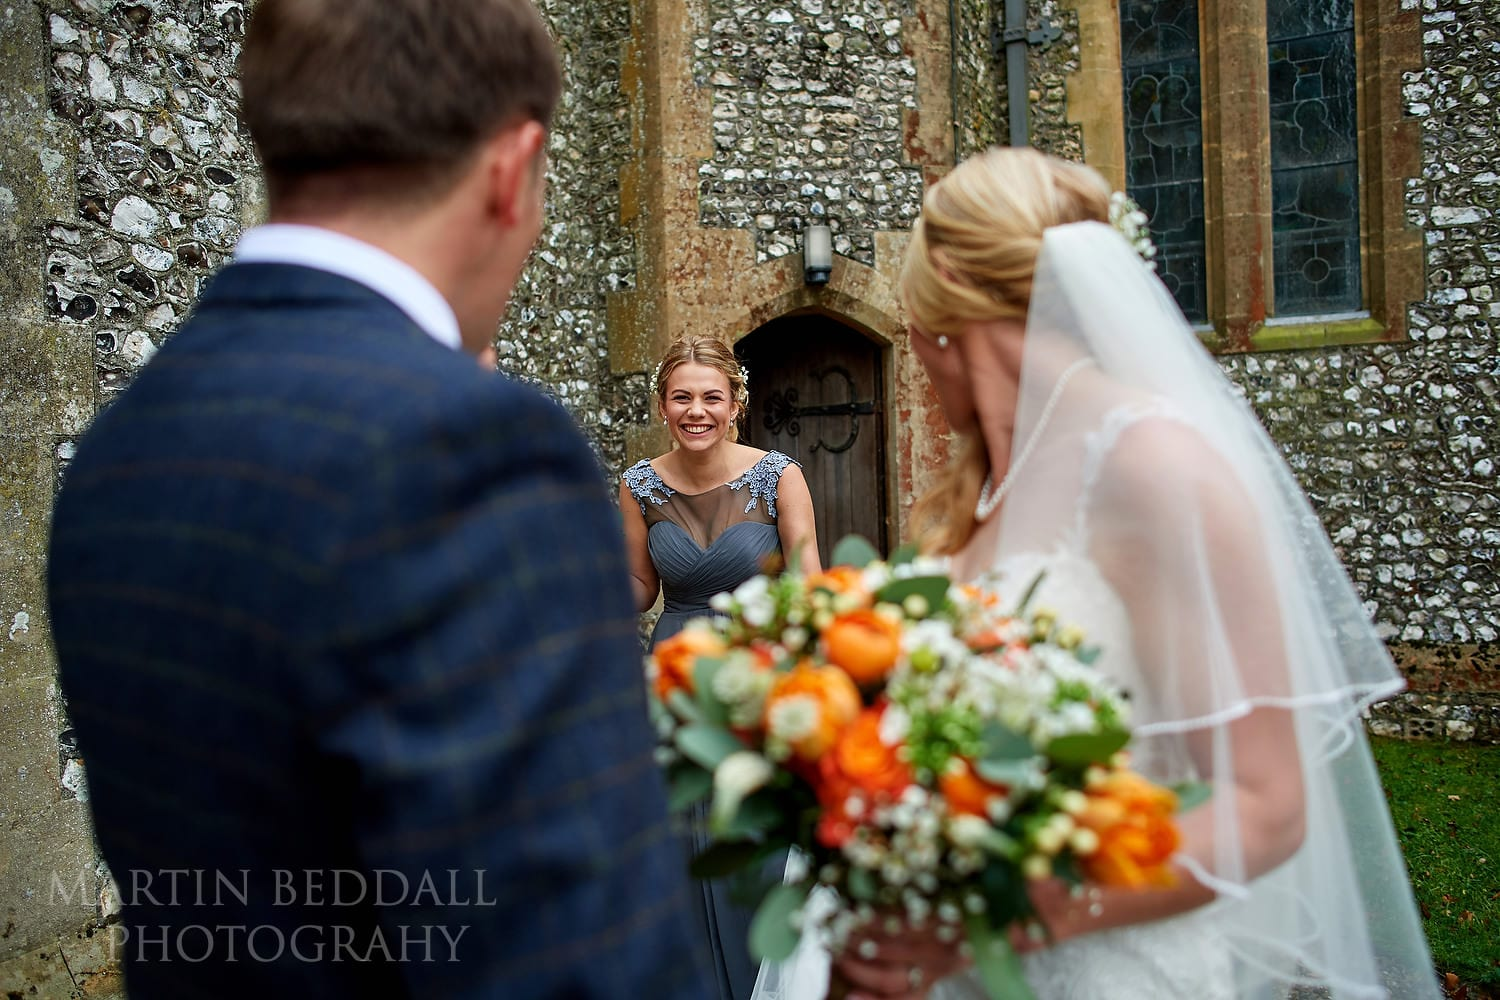 After Highclere wedding